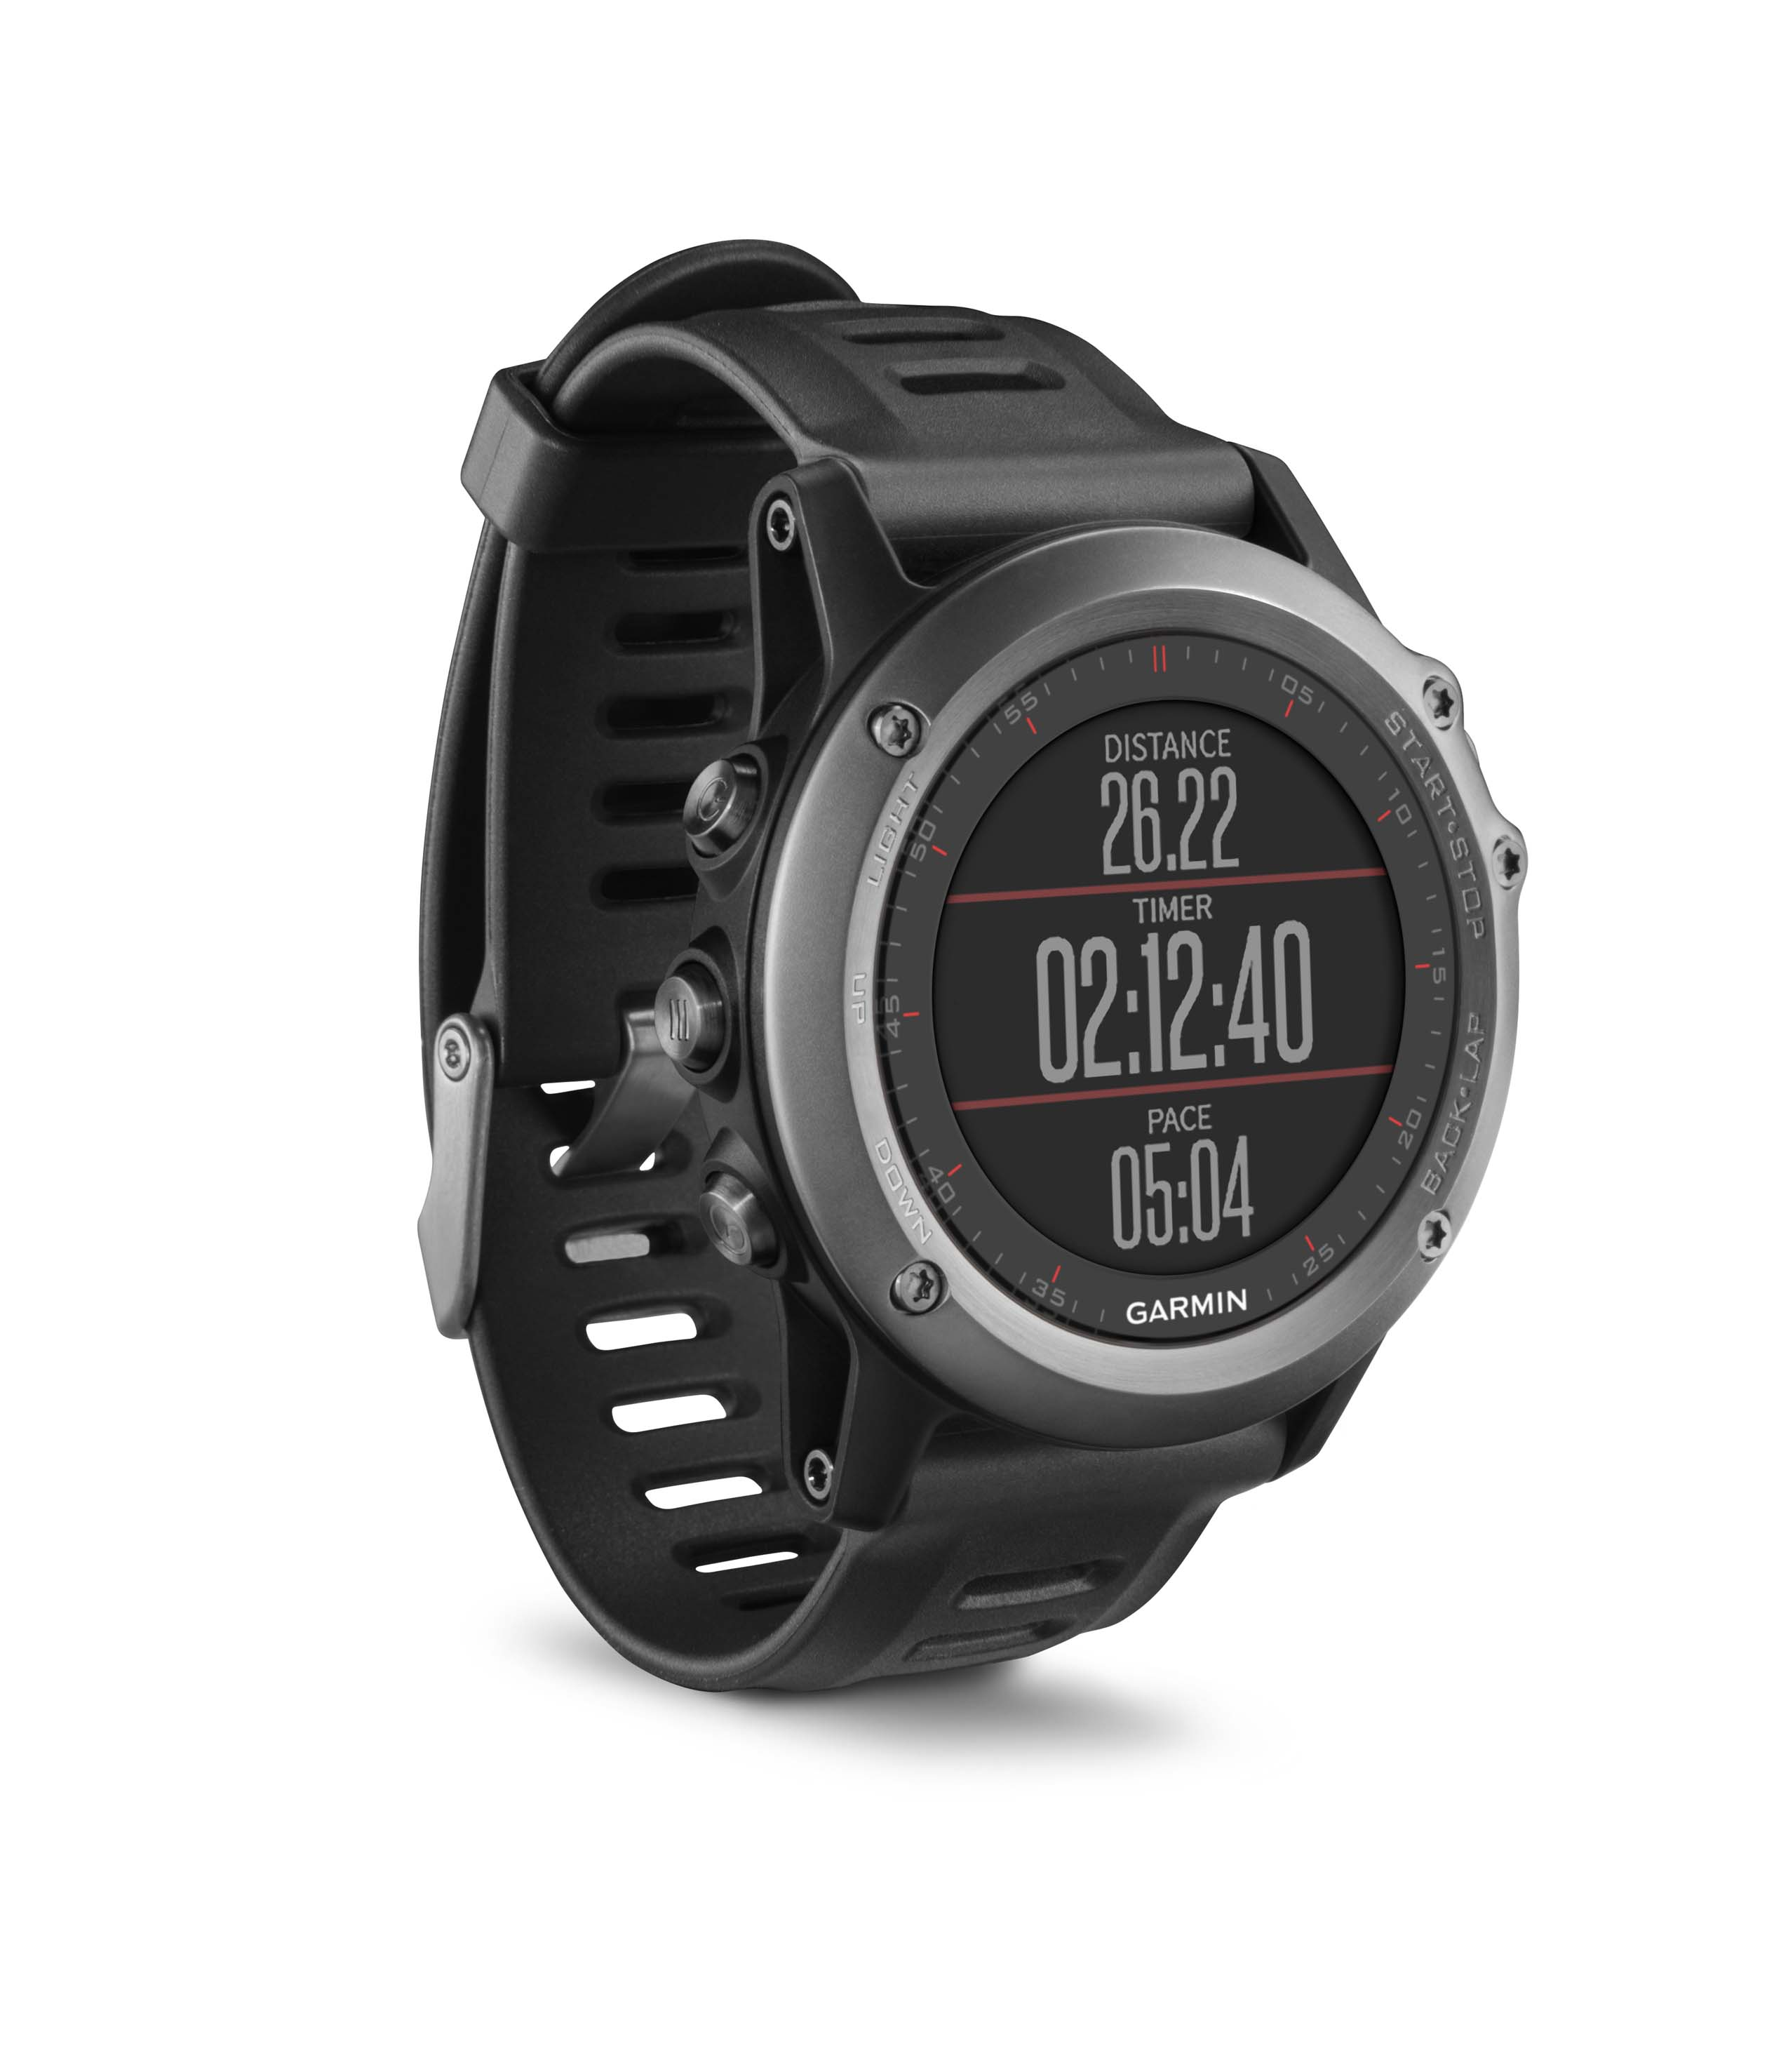 GARMIN_Fenix3_grey-14.jpg